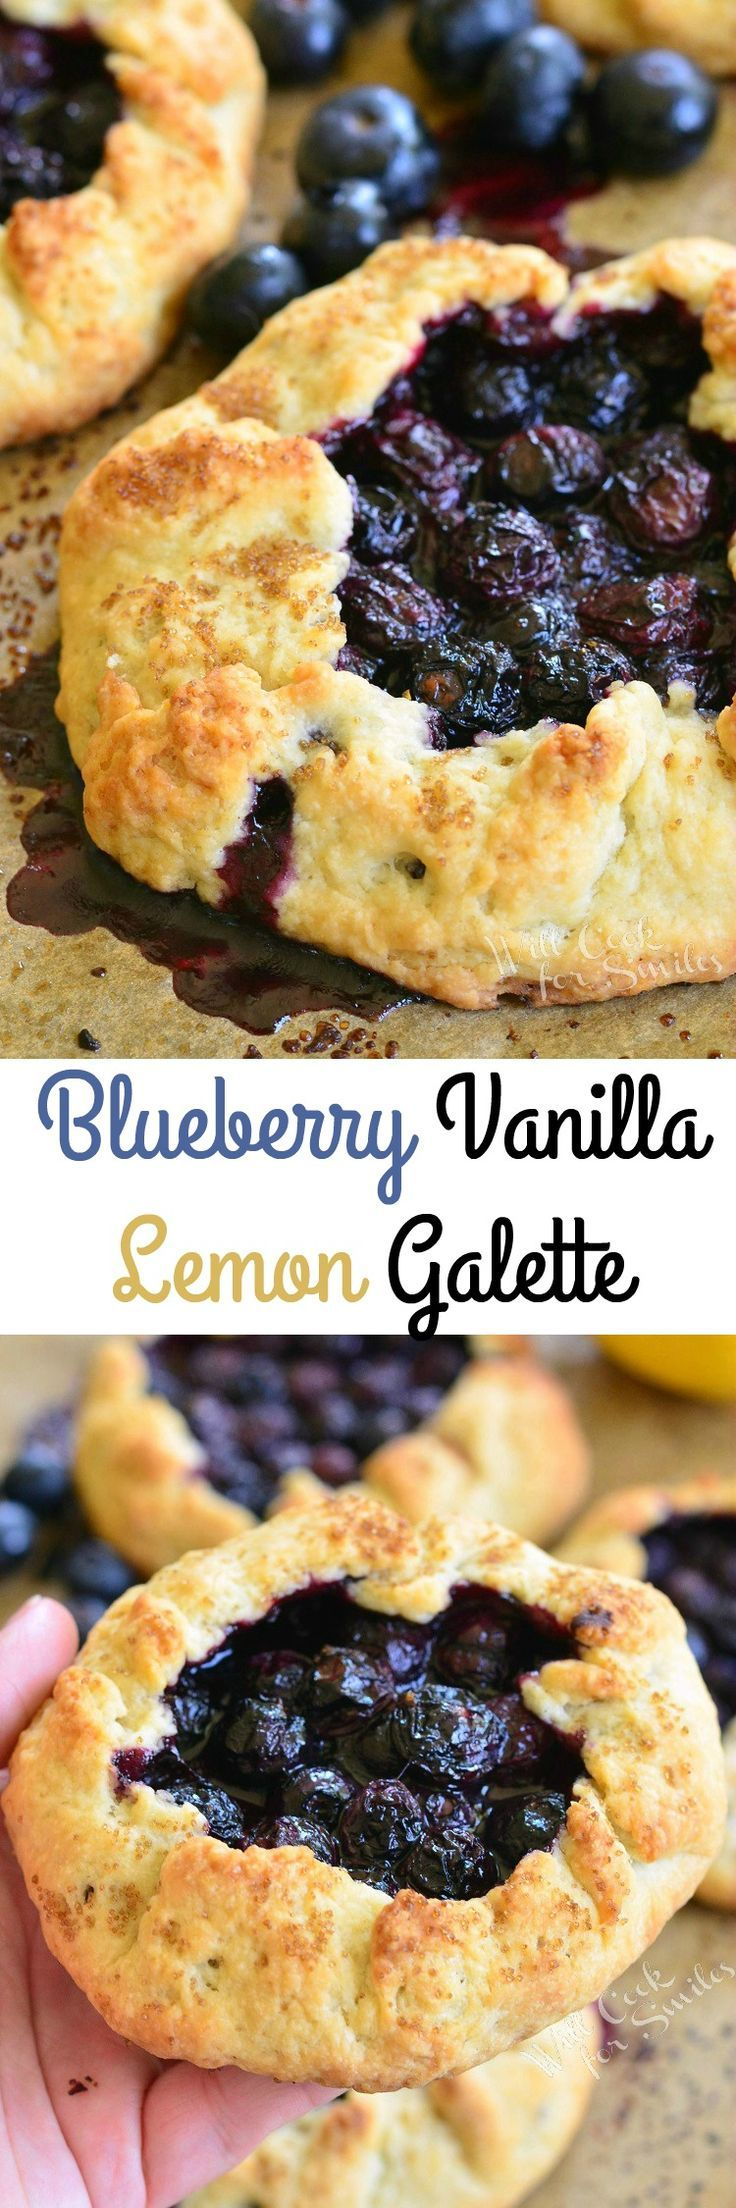 Blueberry Vanilla Lemon Galette. A PERFECT, aromatic, EASY, and delicious dessert for any warm evening. #pie #desserts